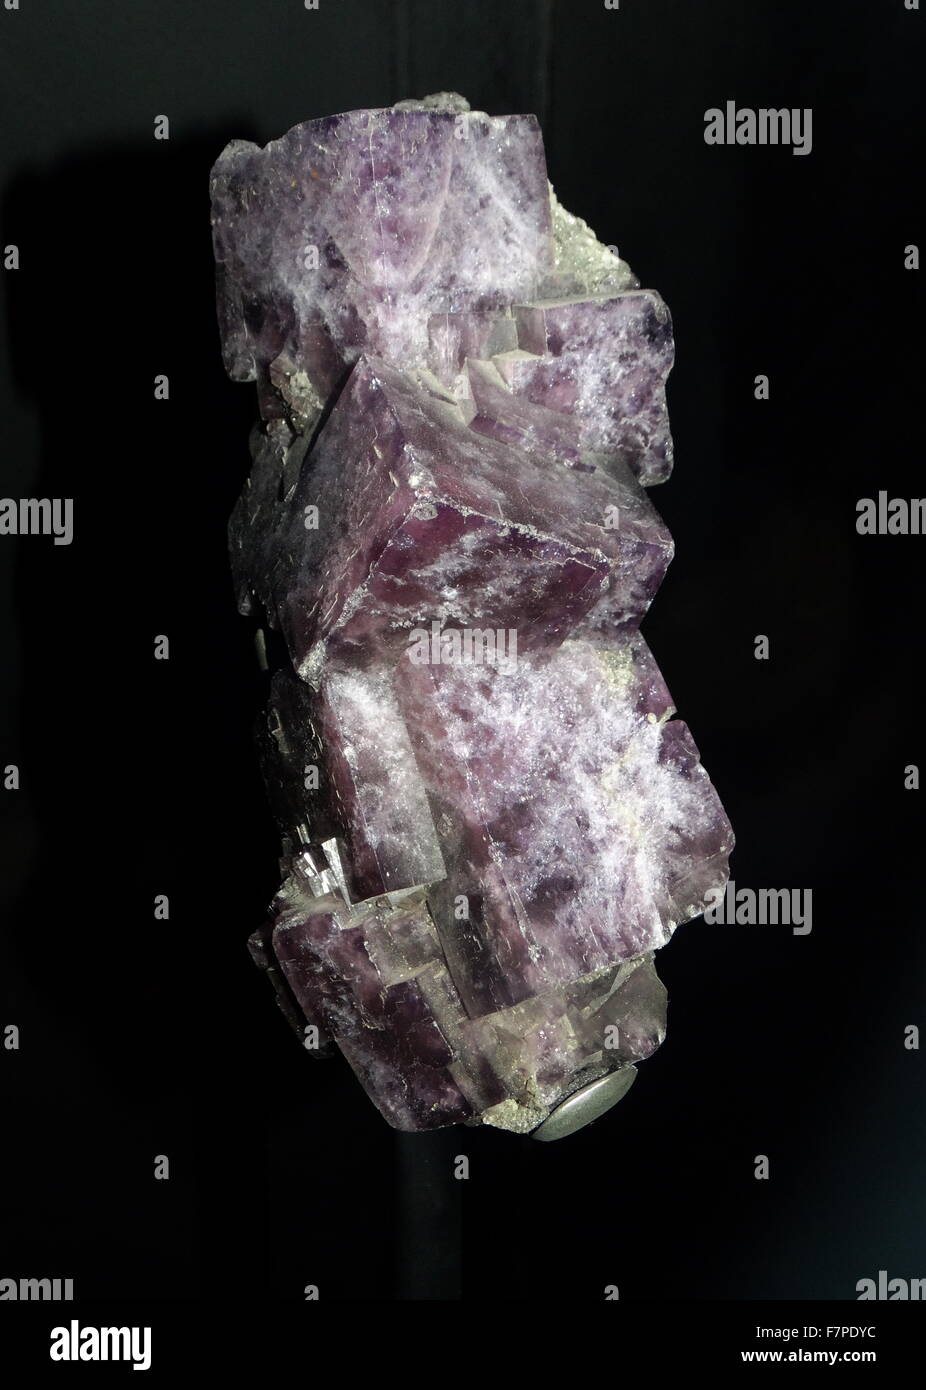 Fluorescent minerals emit visible light when exposed to ultraviolet light - Stock Image